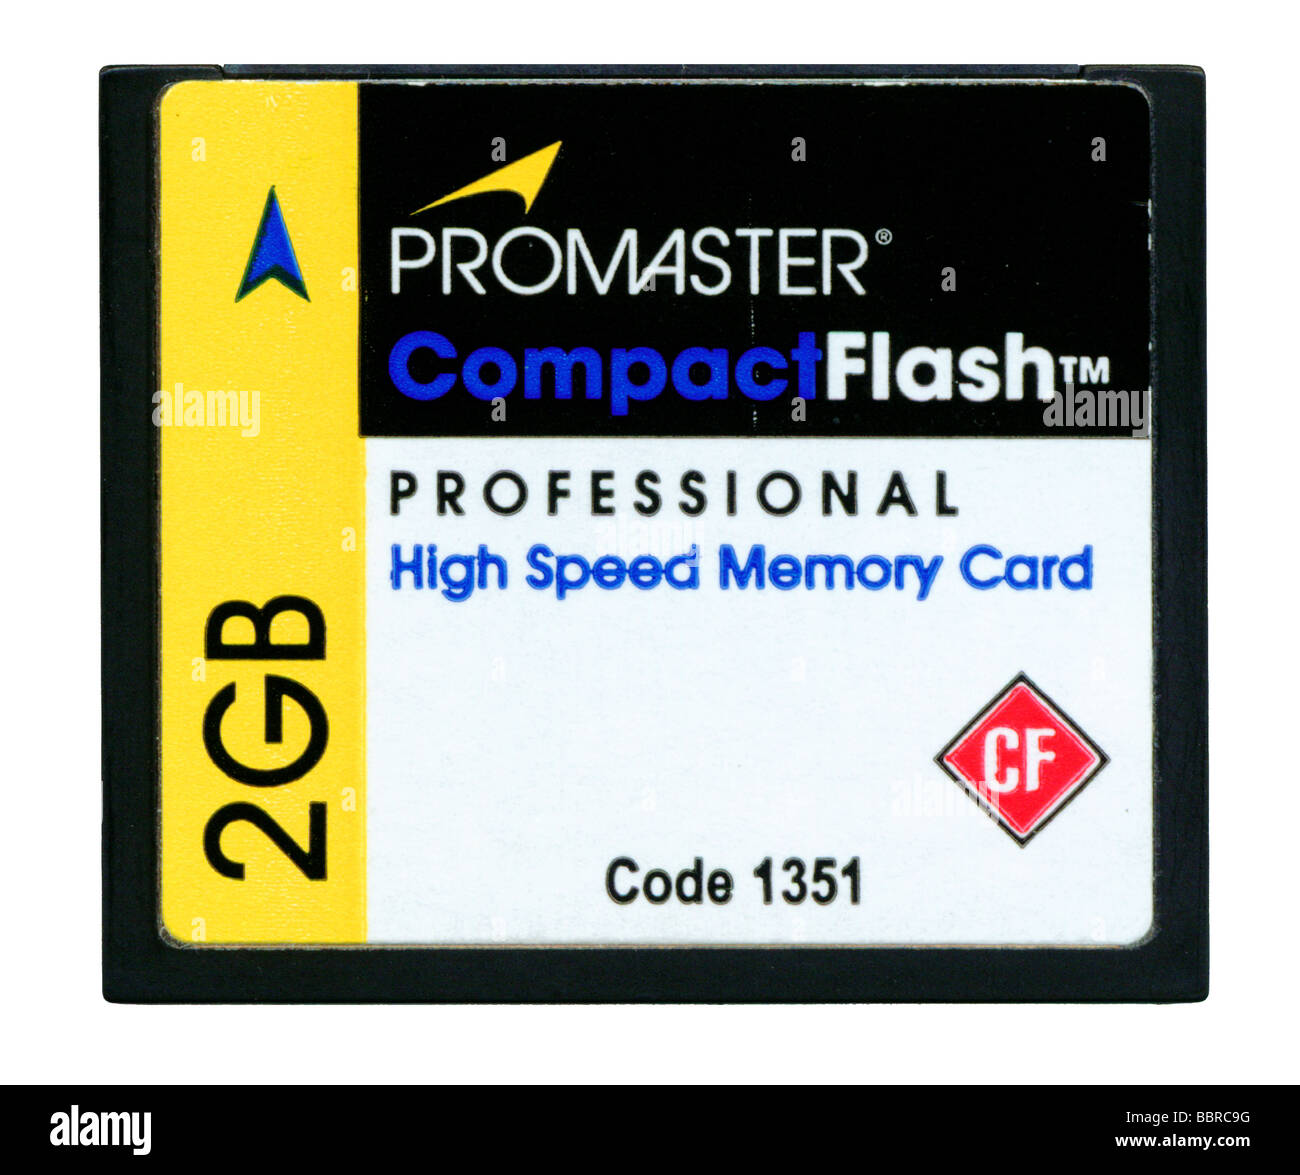 Promaster Compact Flash High Speed Memory Card 2 GB